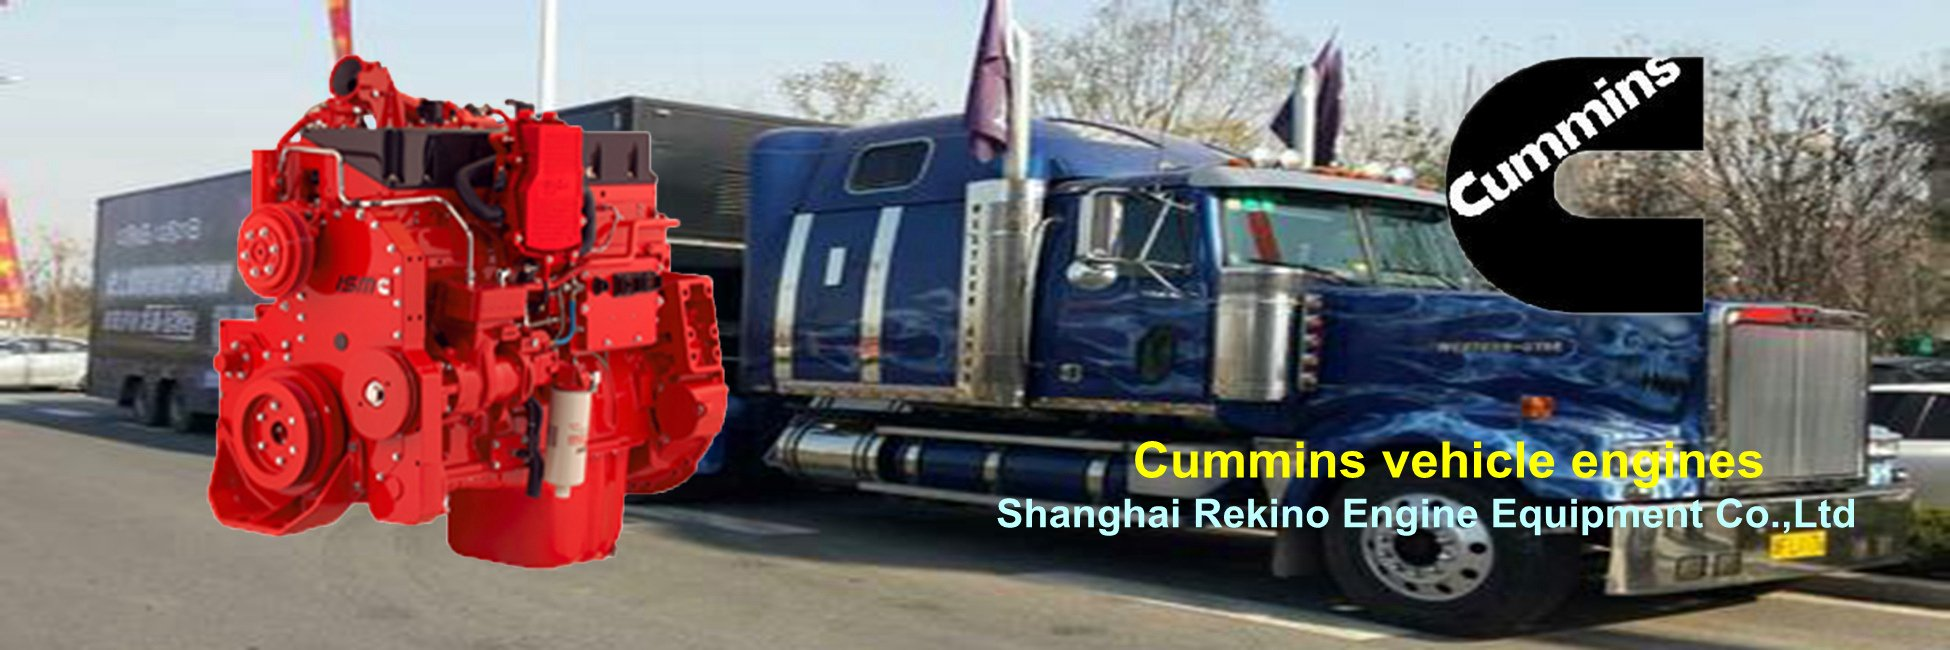 Cummins vehicle engine banner